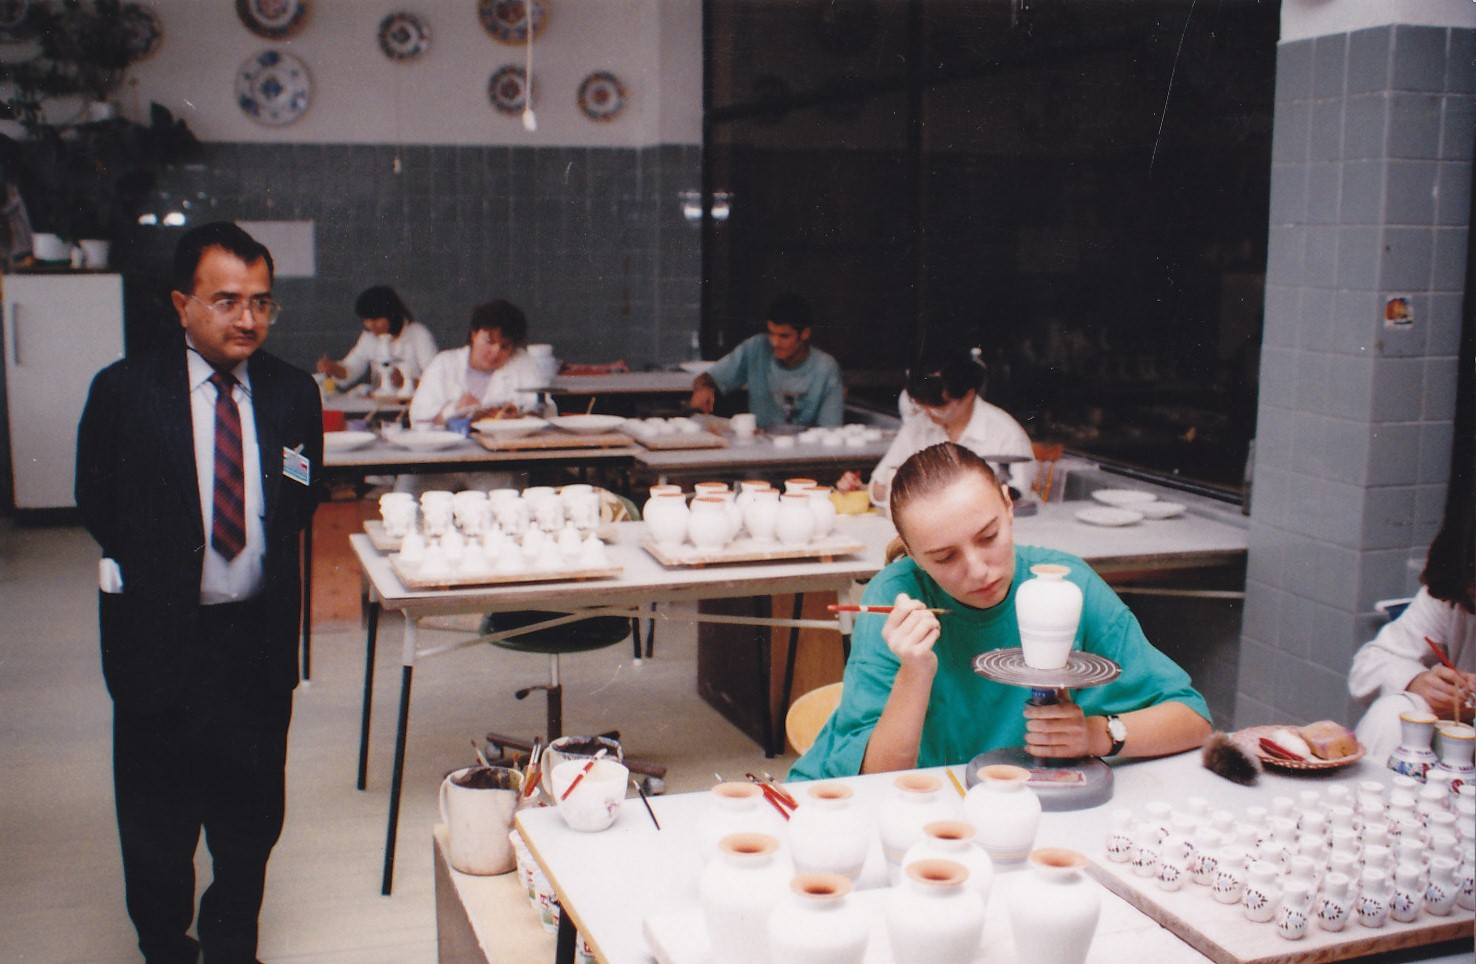 Observing pottery in Czeck during his visit